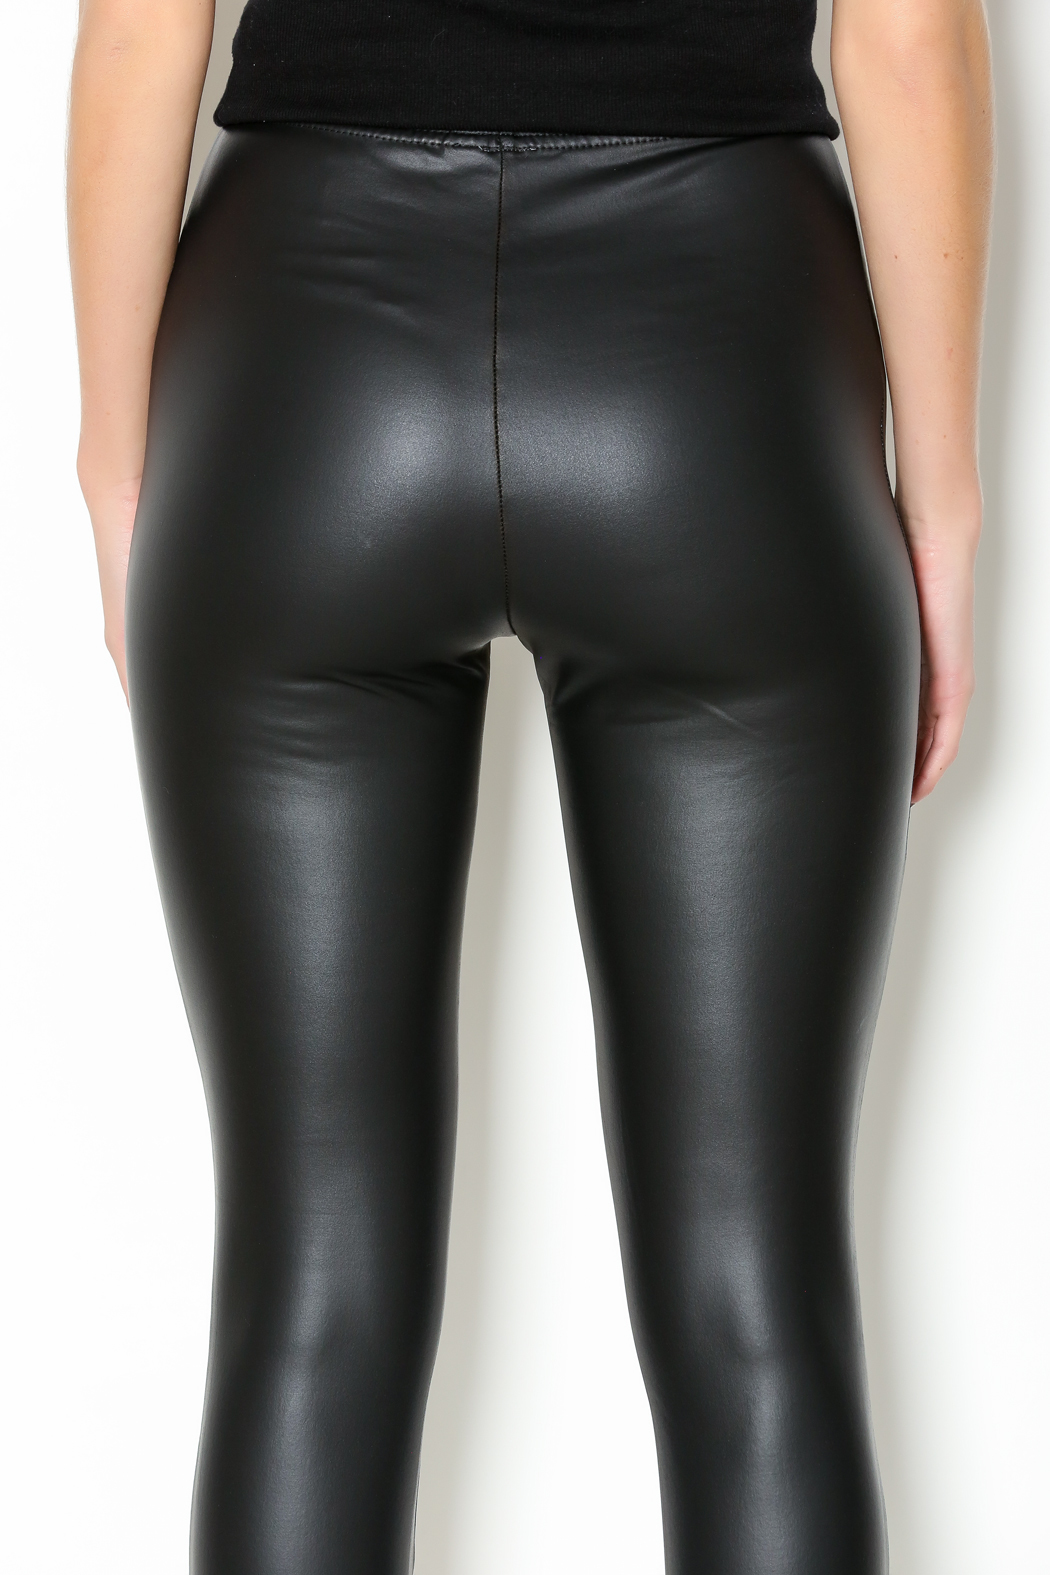 RD Style Faux Leather Legging from Michigan by Sparrow ...